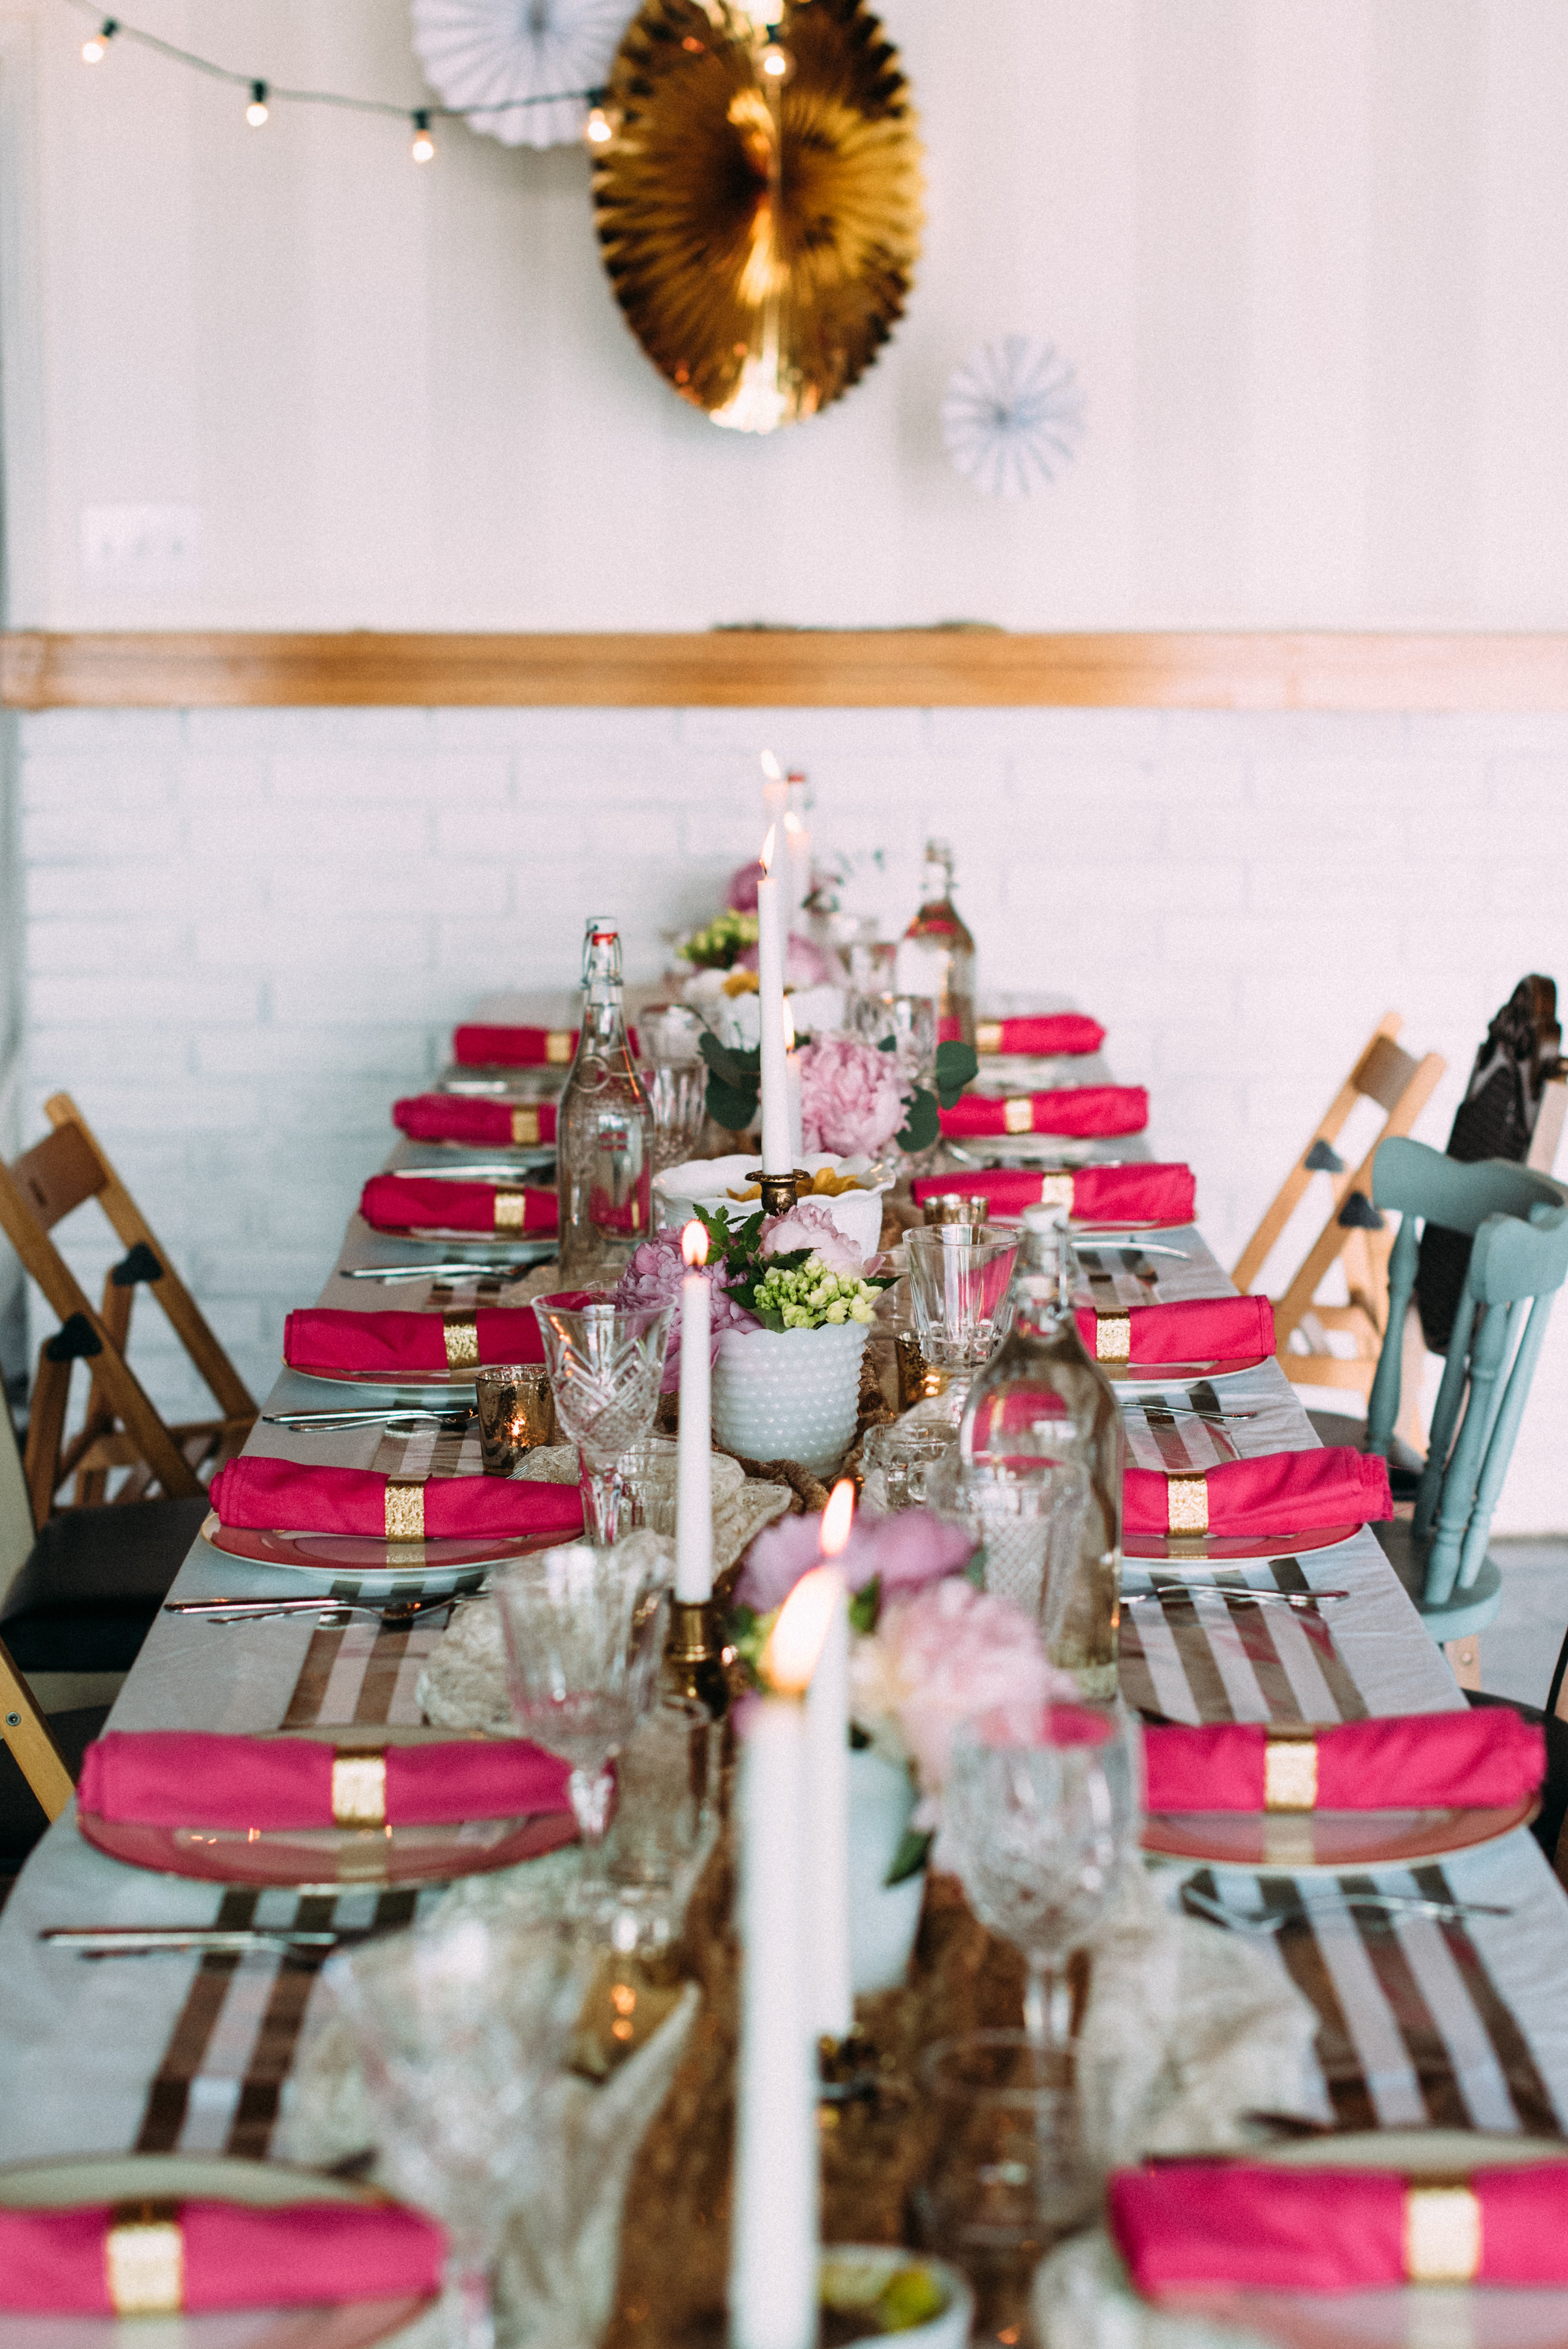 Filling a table with decor is lovely!! But make sure you have space for the food and that guests can easily see over and around the centerpieces